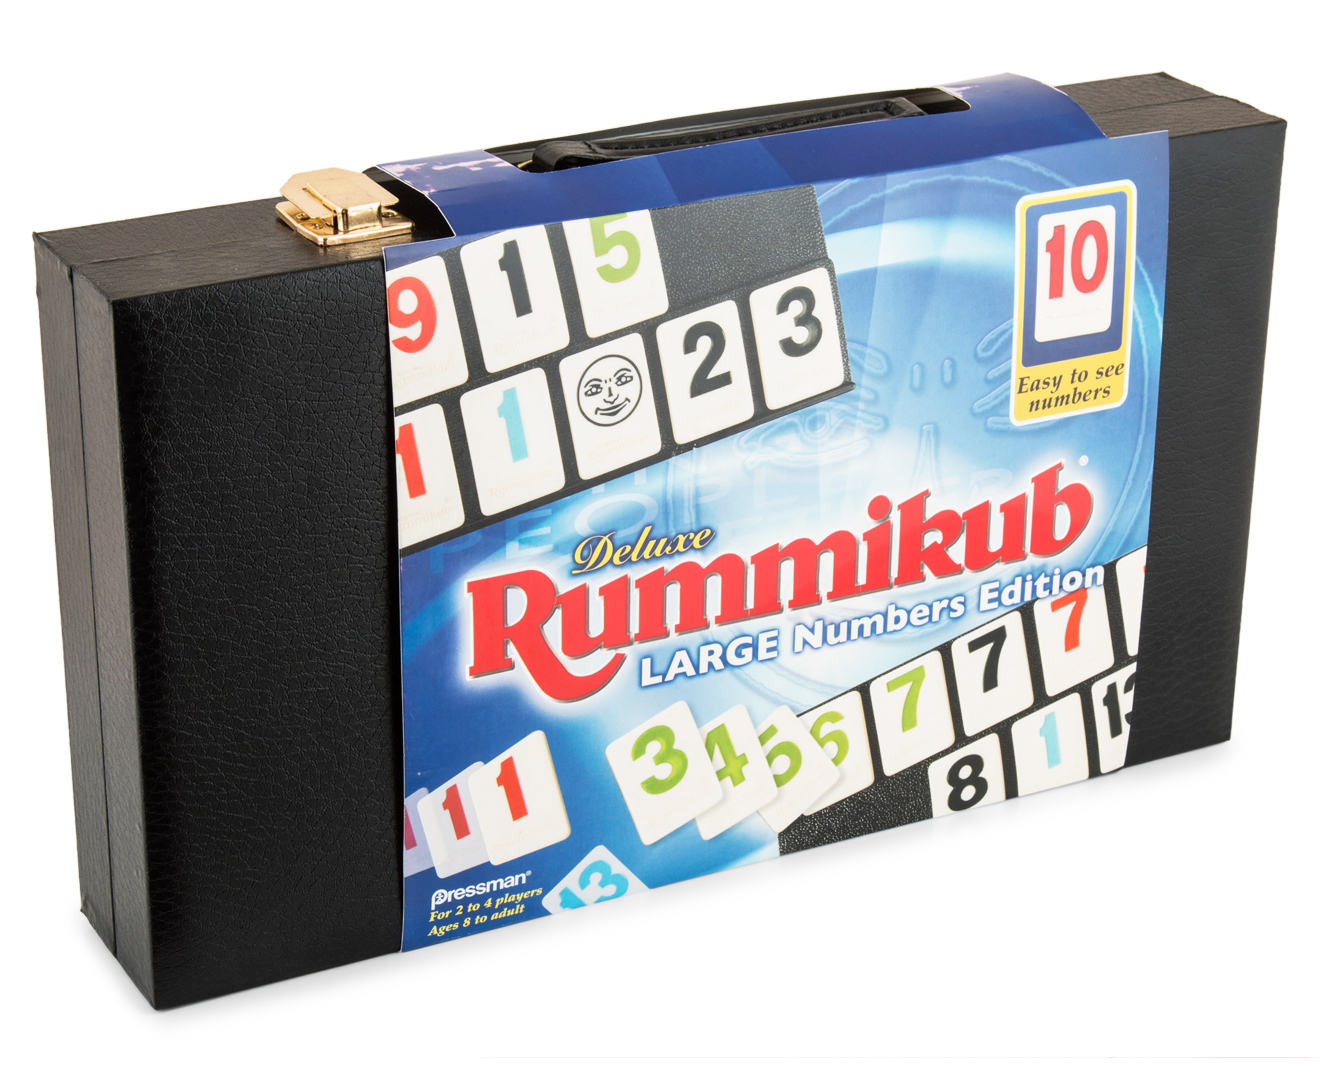 Deluxe Rummikub Large Numbers Edition Game | Catch.com.au